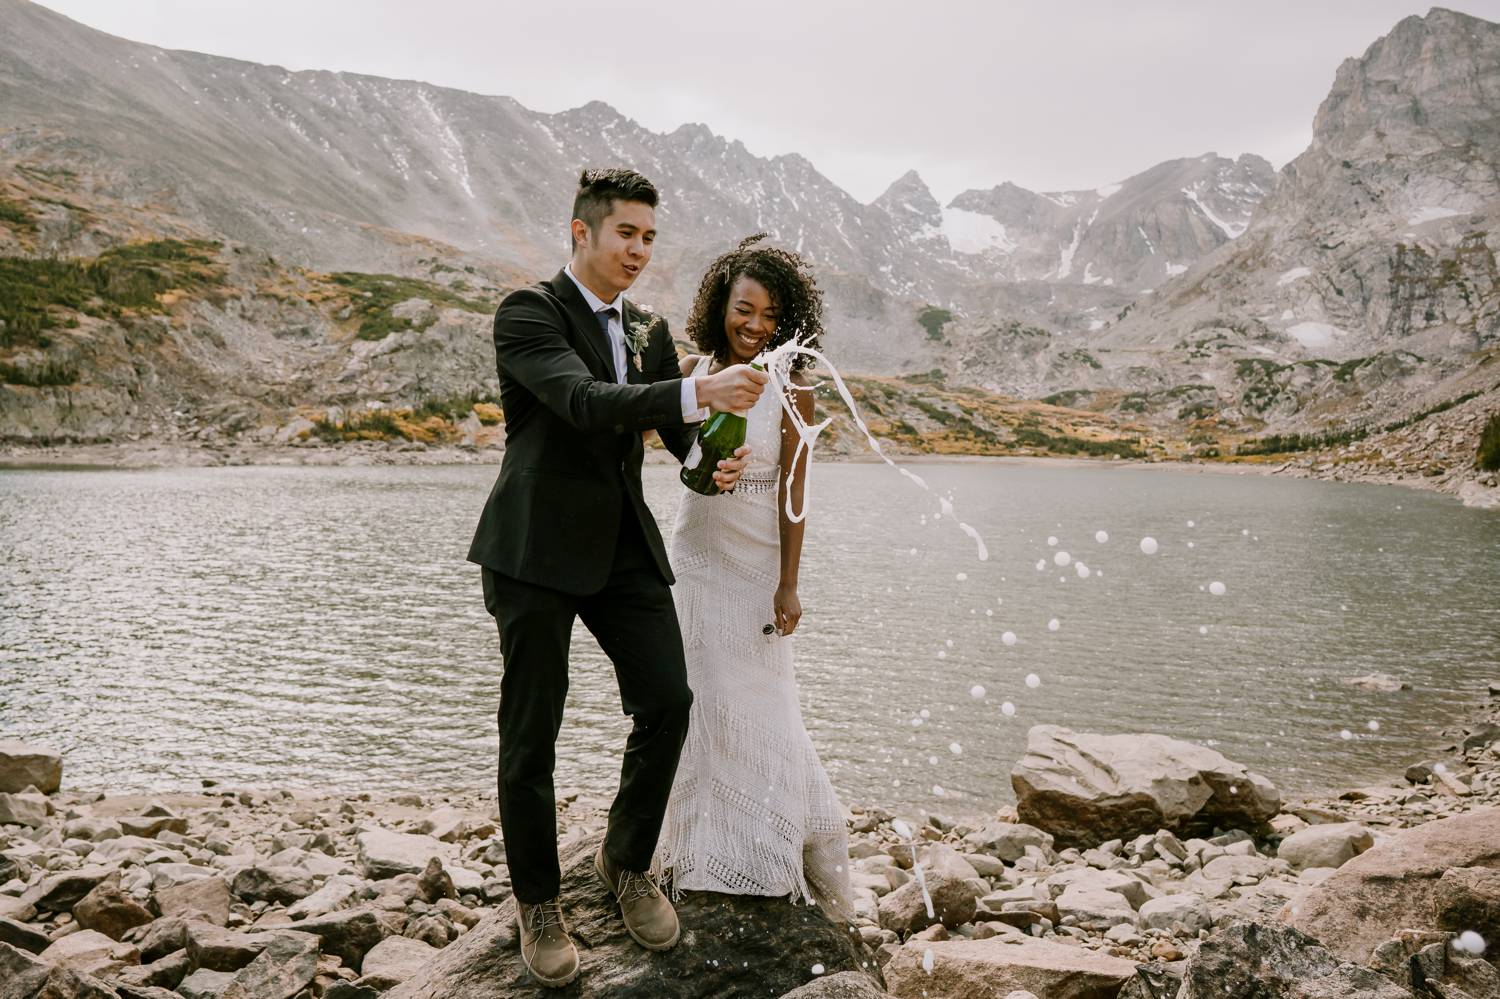 Customer Loyalty: By Nick Sparks, a bride and groom pop open a bottle of champagne beside a sparkling mountainside lake.